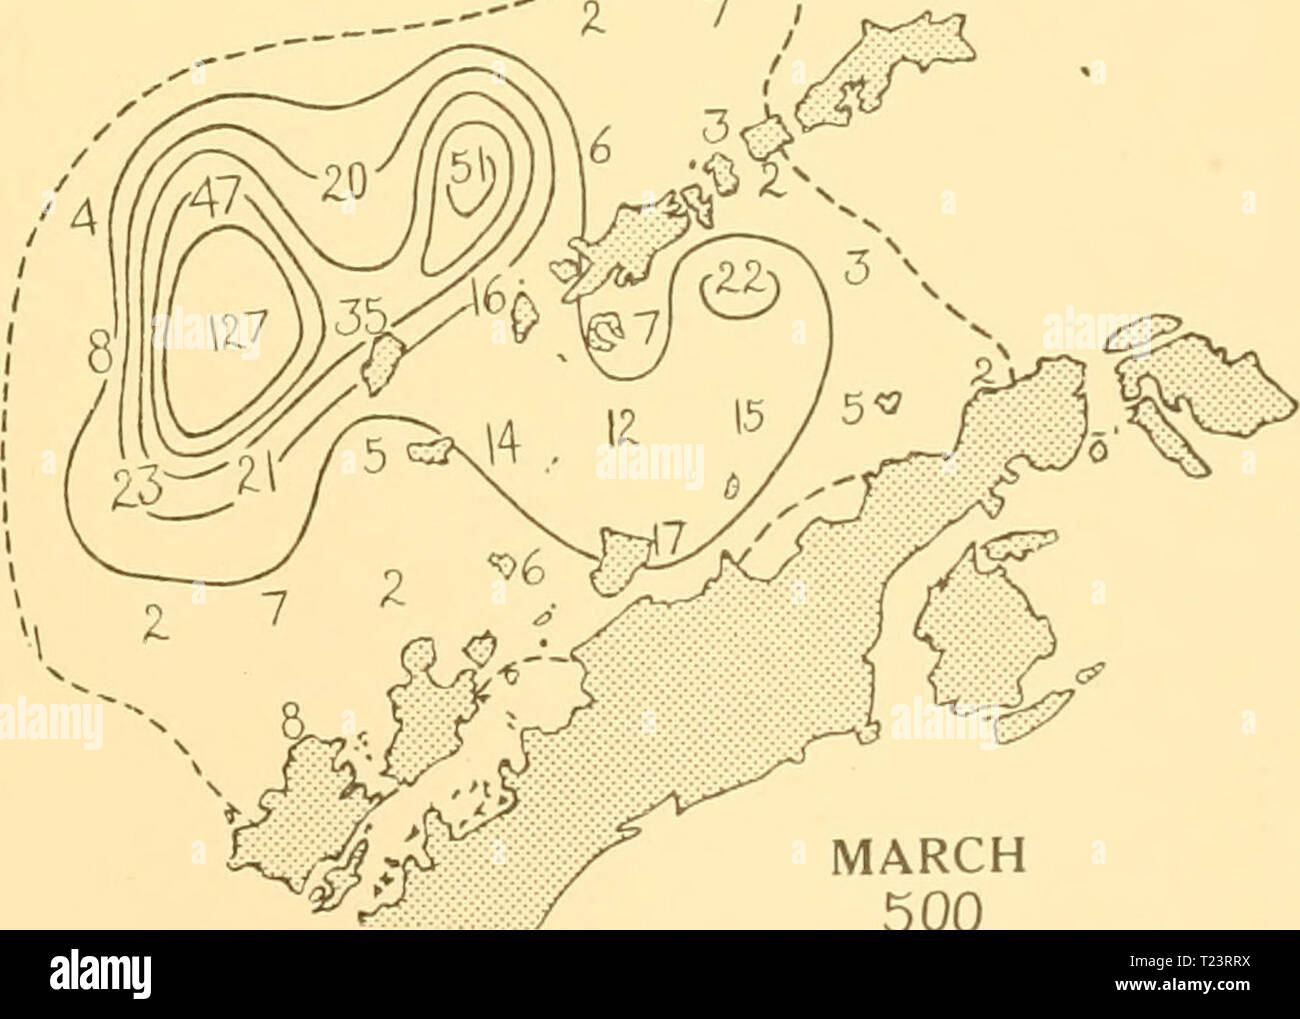 Archive image from page 252 of Discovery reports (1932) Discovery reports  discoveryreports06inst Year: 1932  JANUARY r    MARCH 500 SCALE OF NAUTICAL MILES. 100 200 30O Distribution of Fin whales taken on the South Shetland grounds in season 1925-6 - Stock Image